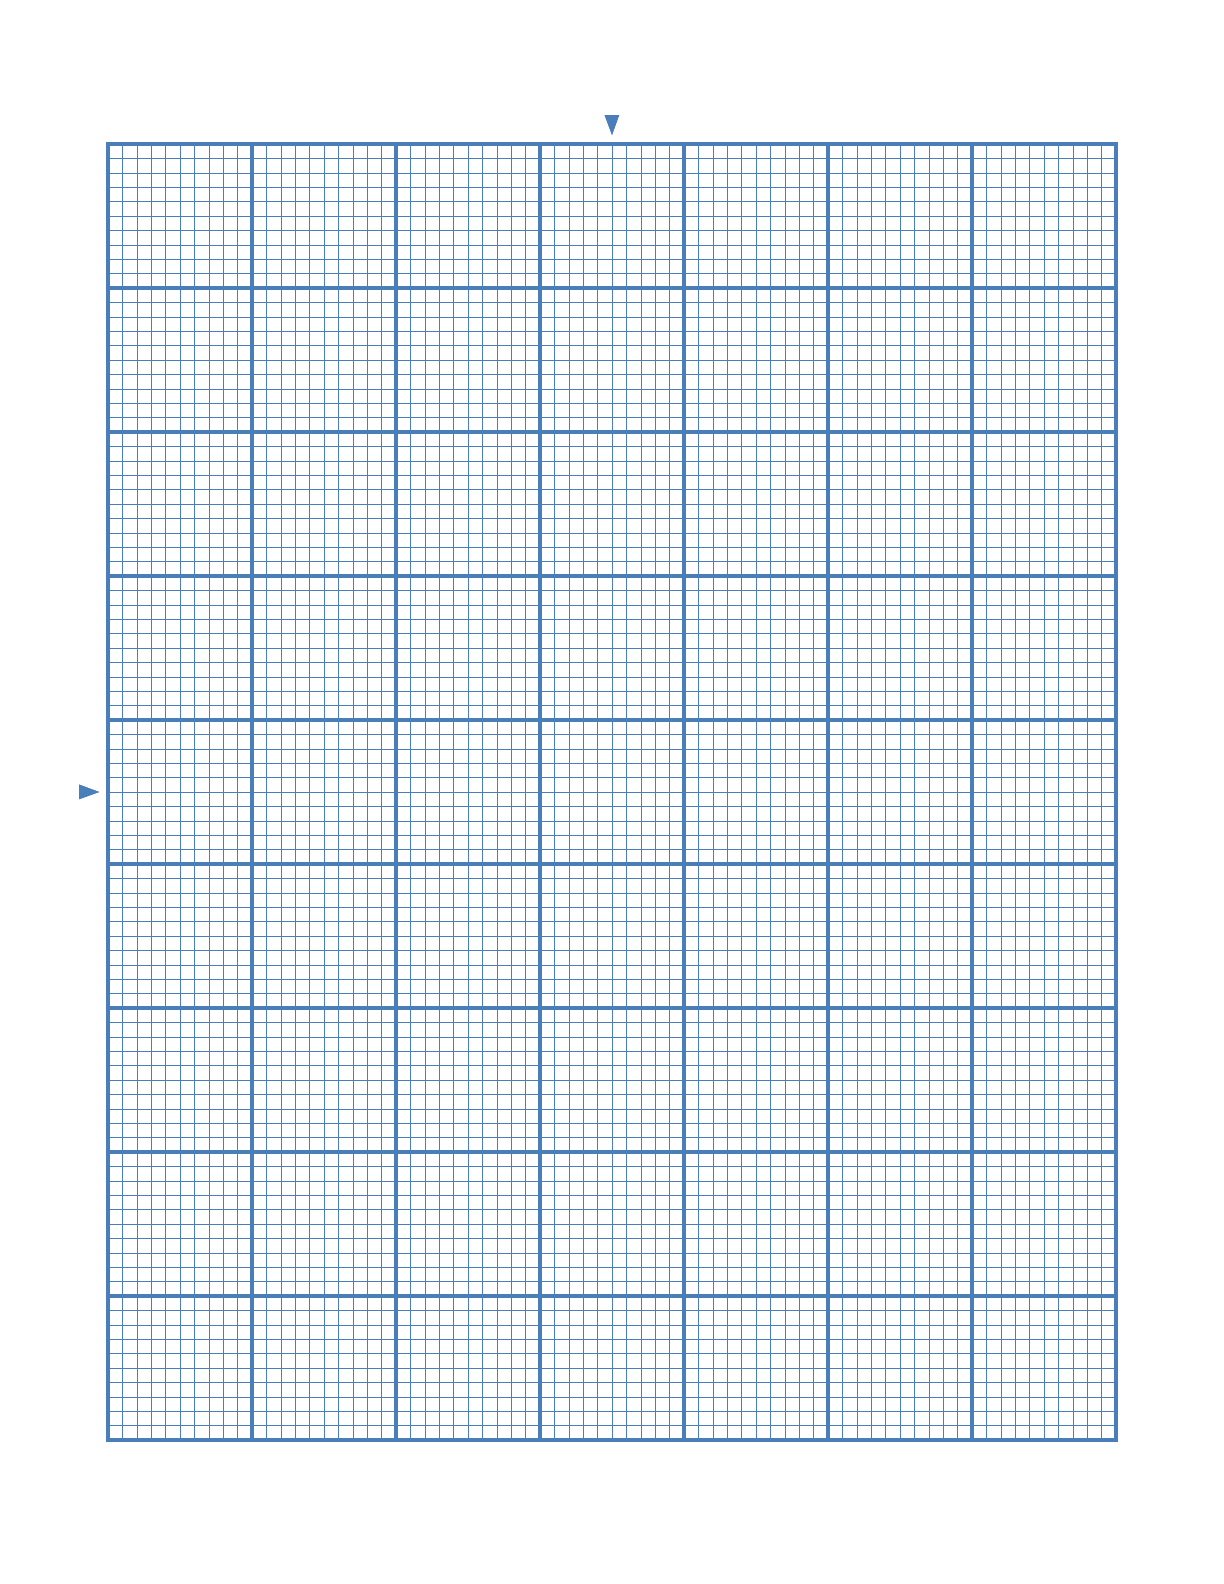 CrossStitch 10 Lines per Division